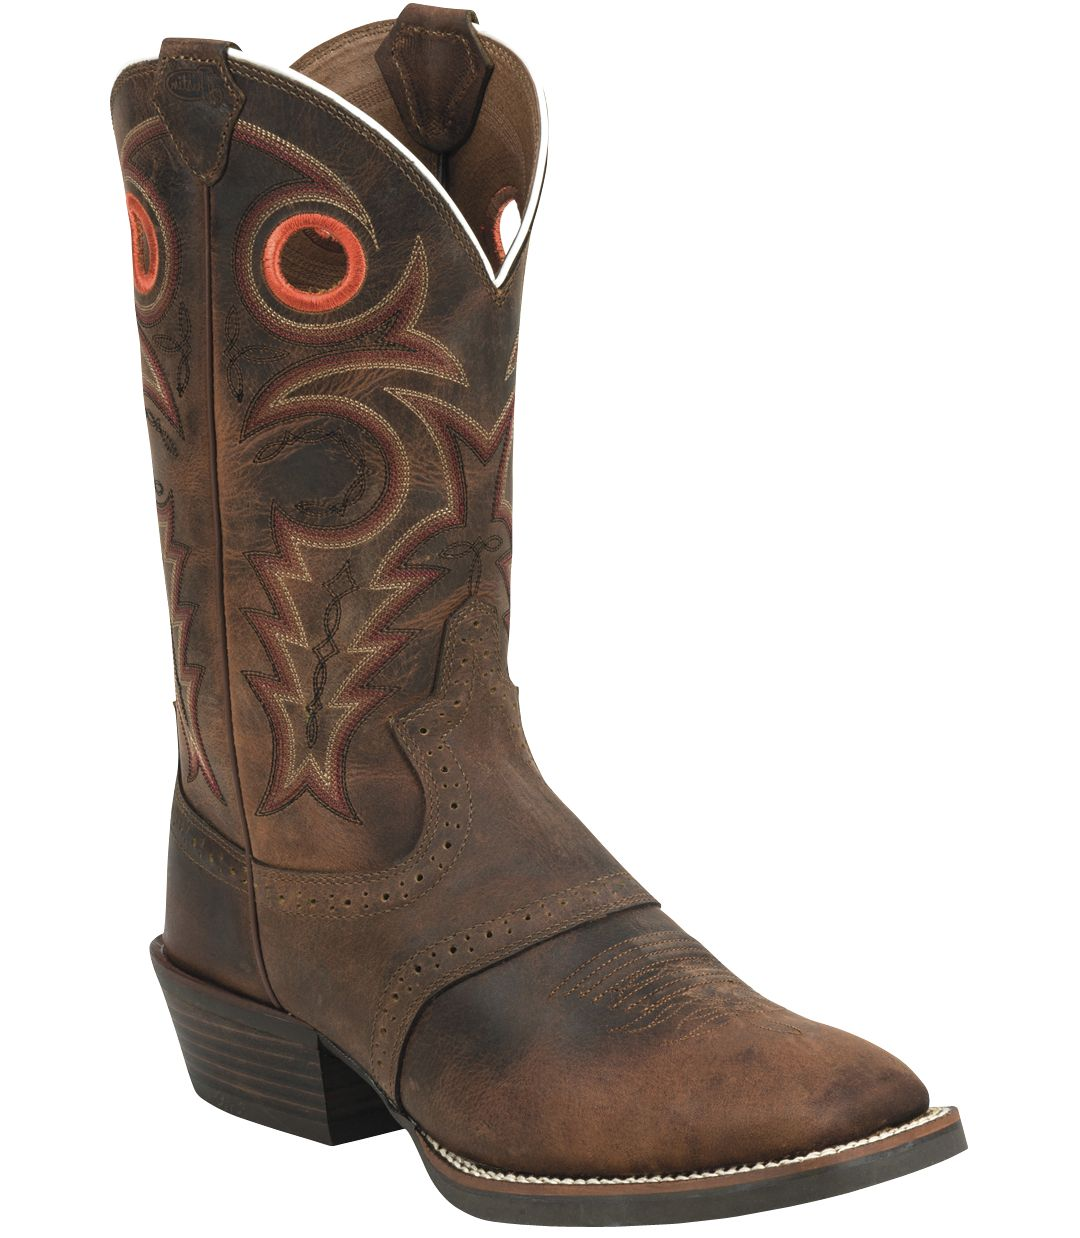 ce738c383ad Justin Men's Whiskey Buffalo Silver Collection Western Boots ...